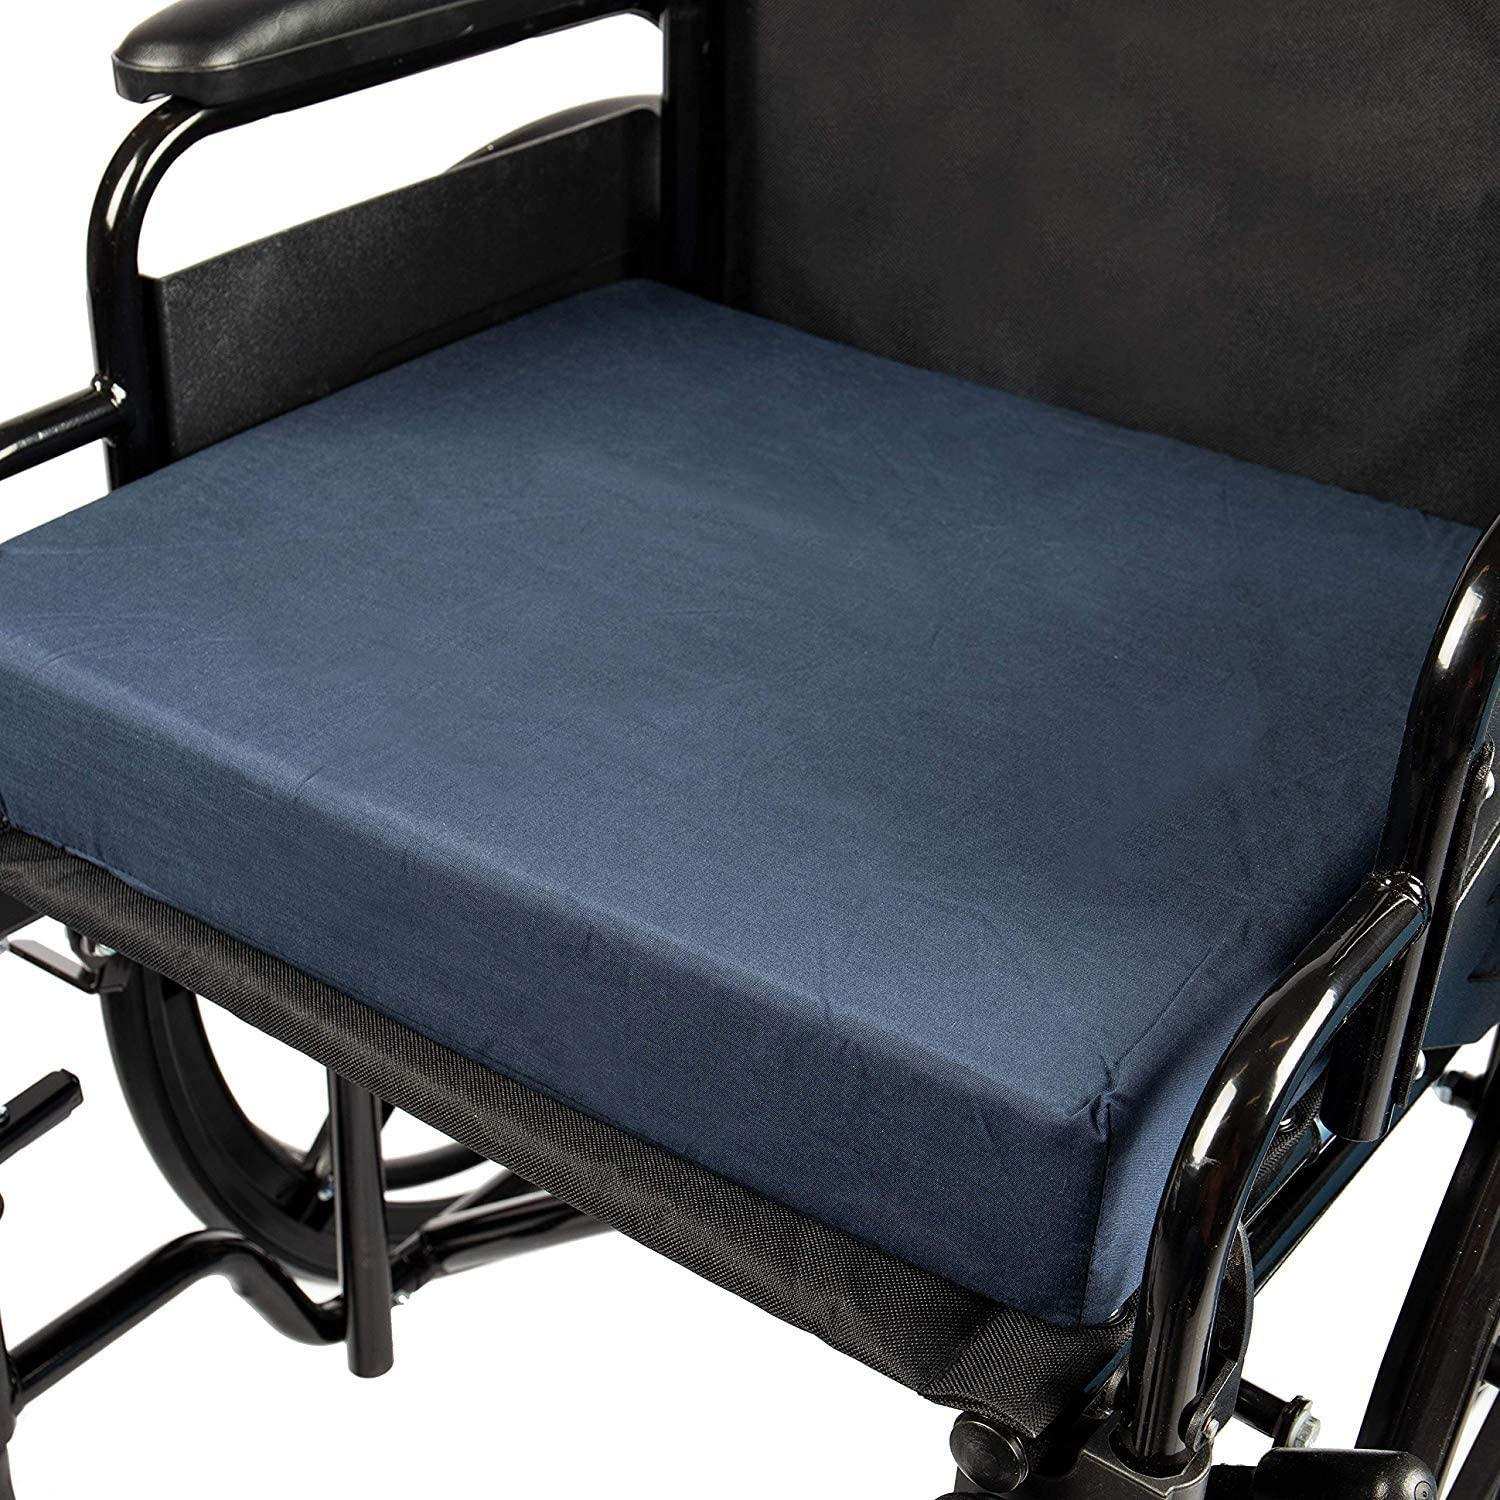 Amazon.com: DMI Seat Cushion for Wheelchairs, Mobility Scooters ...